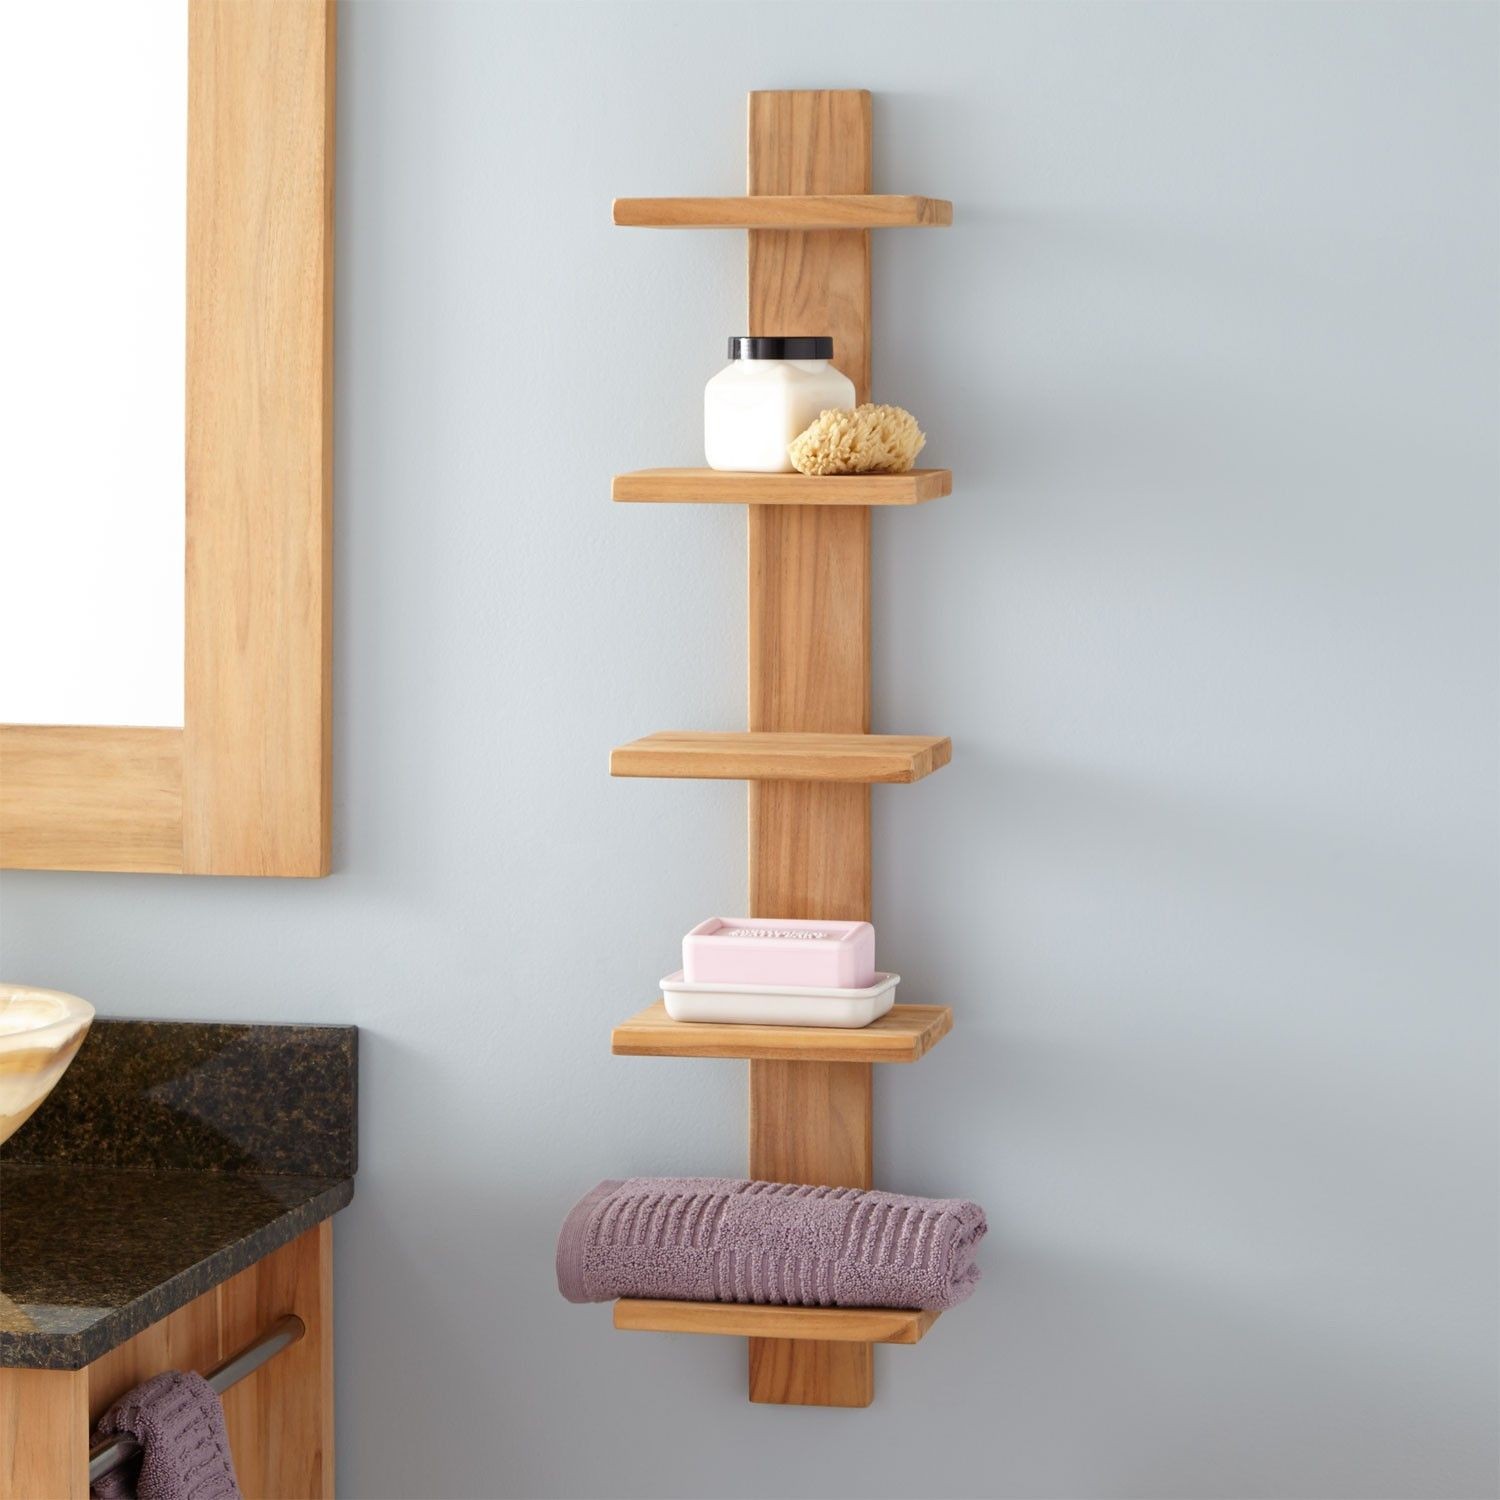 Hanging Bathroom Shelves Entrancing Bastian Hanging Bathroom Teak Shelf  Five Shelves  Pinterest